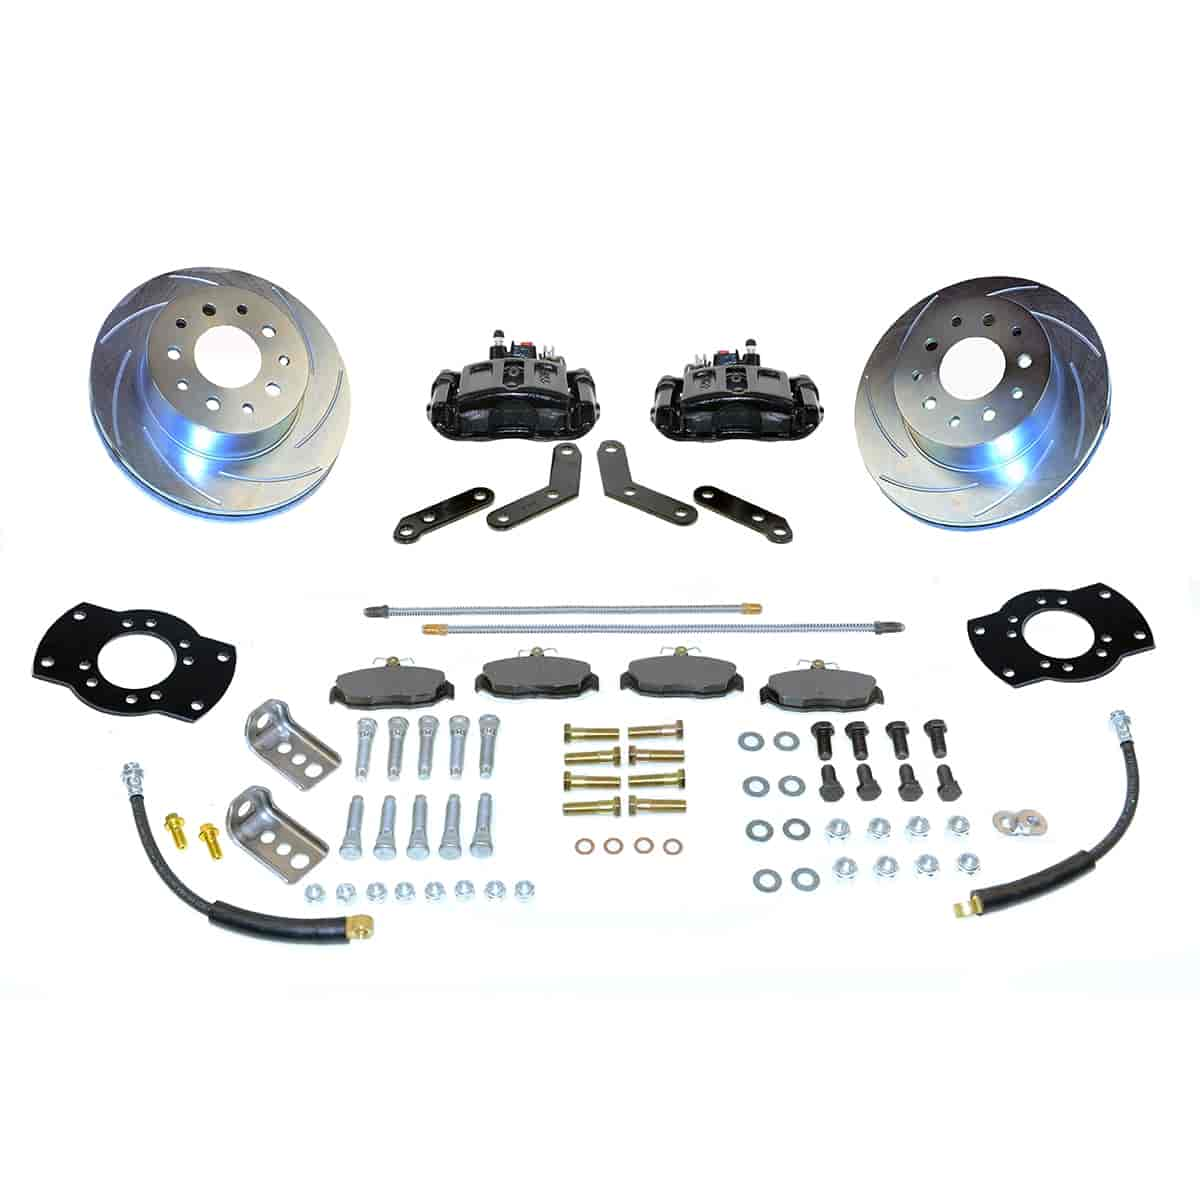 Stainless Steel Brakes A125-2BK - Stainless Steel Brakes Single Piston Rear Disc Brake Conversion Kit